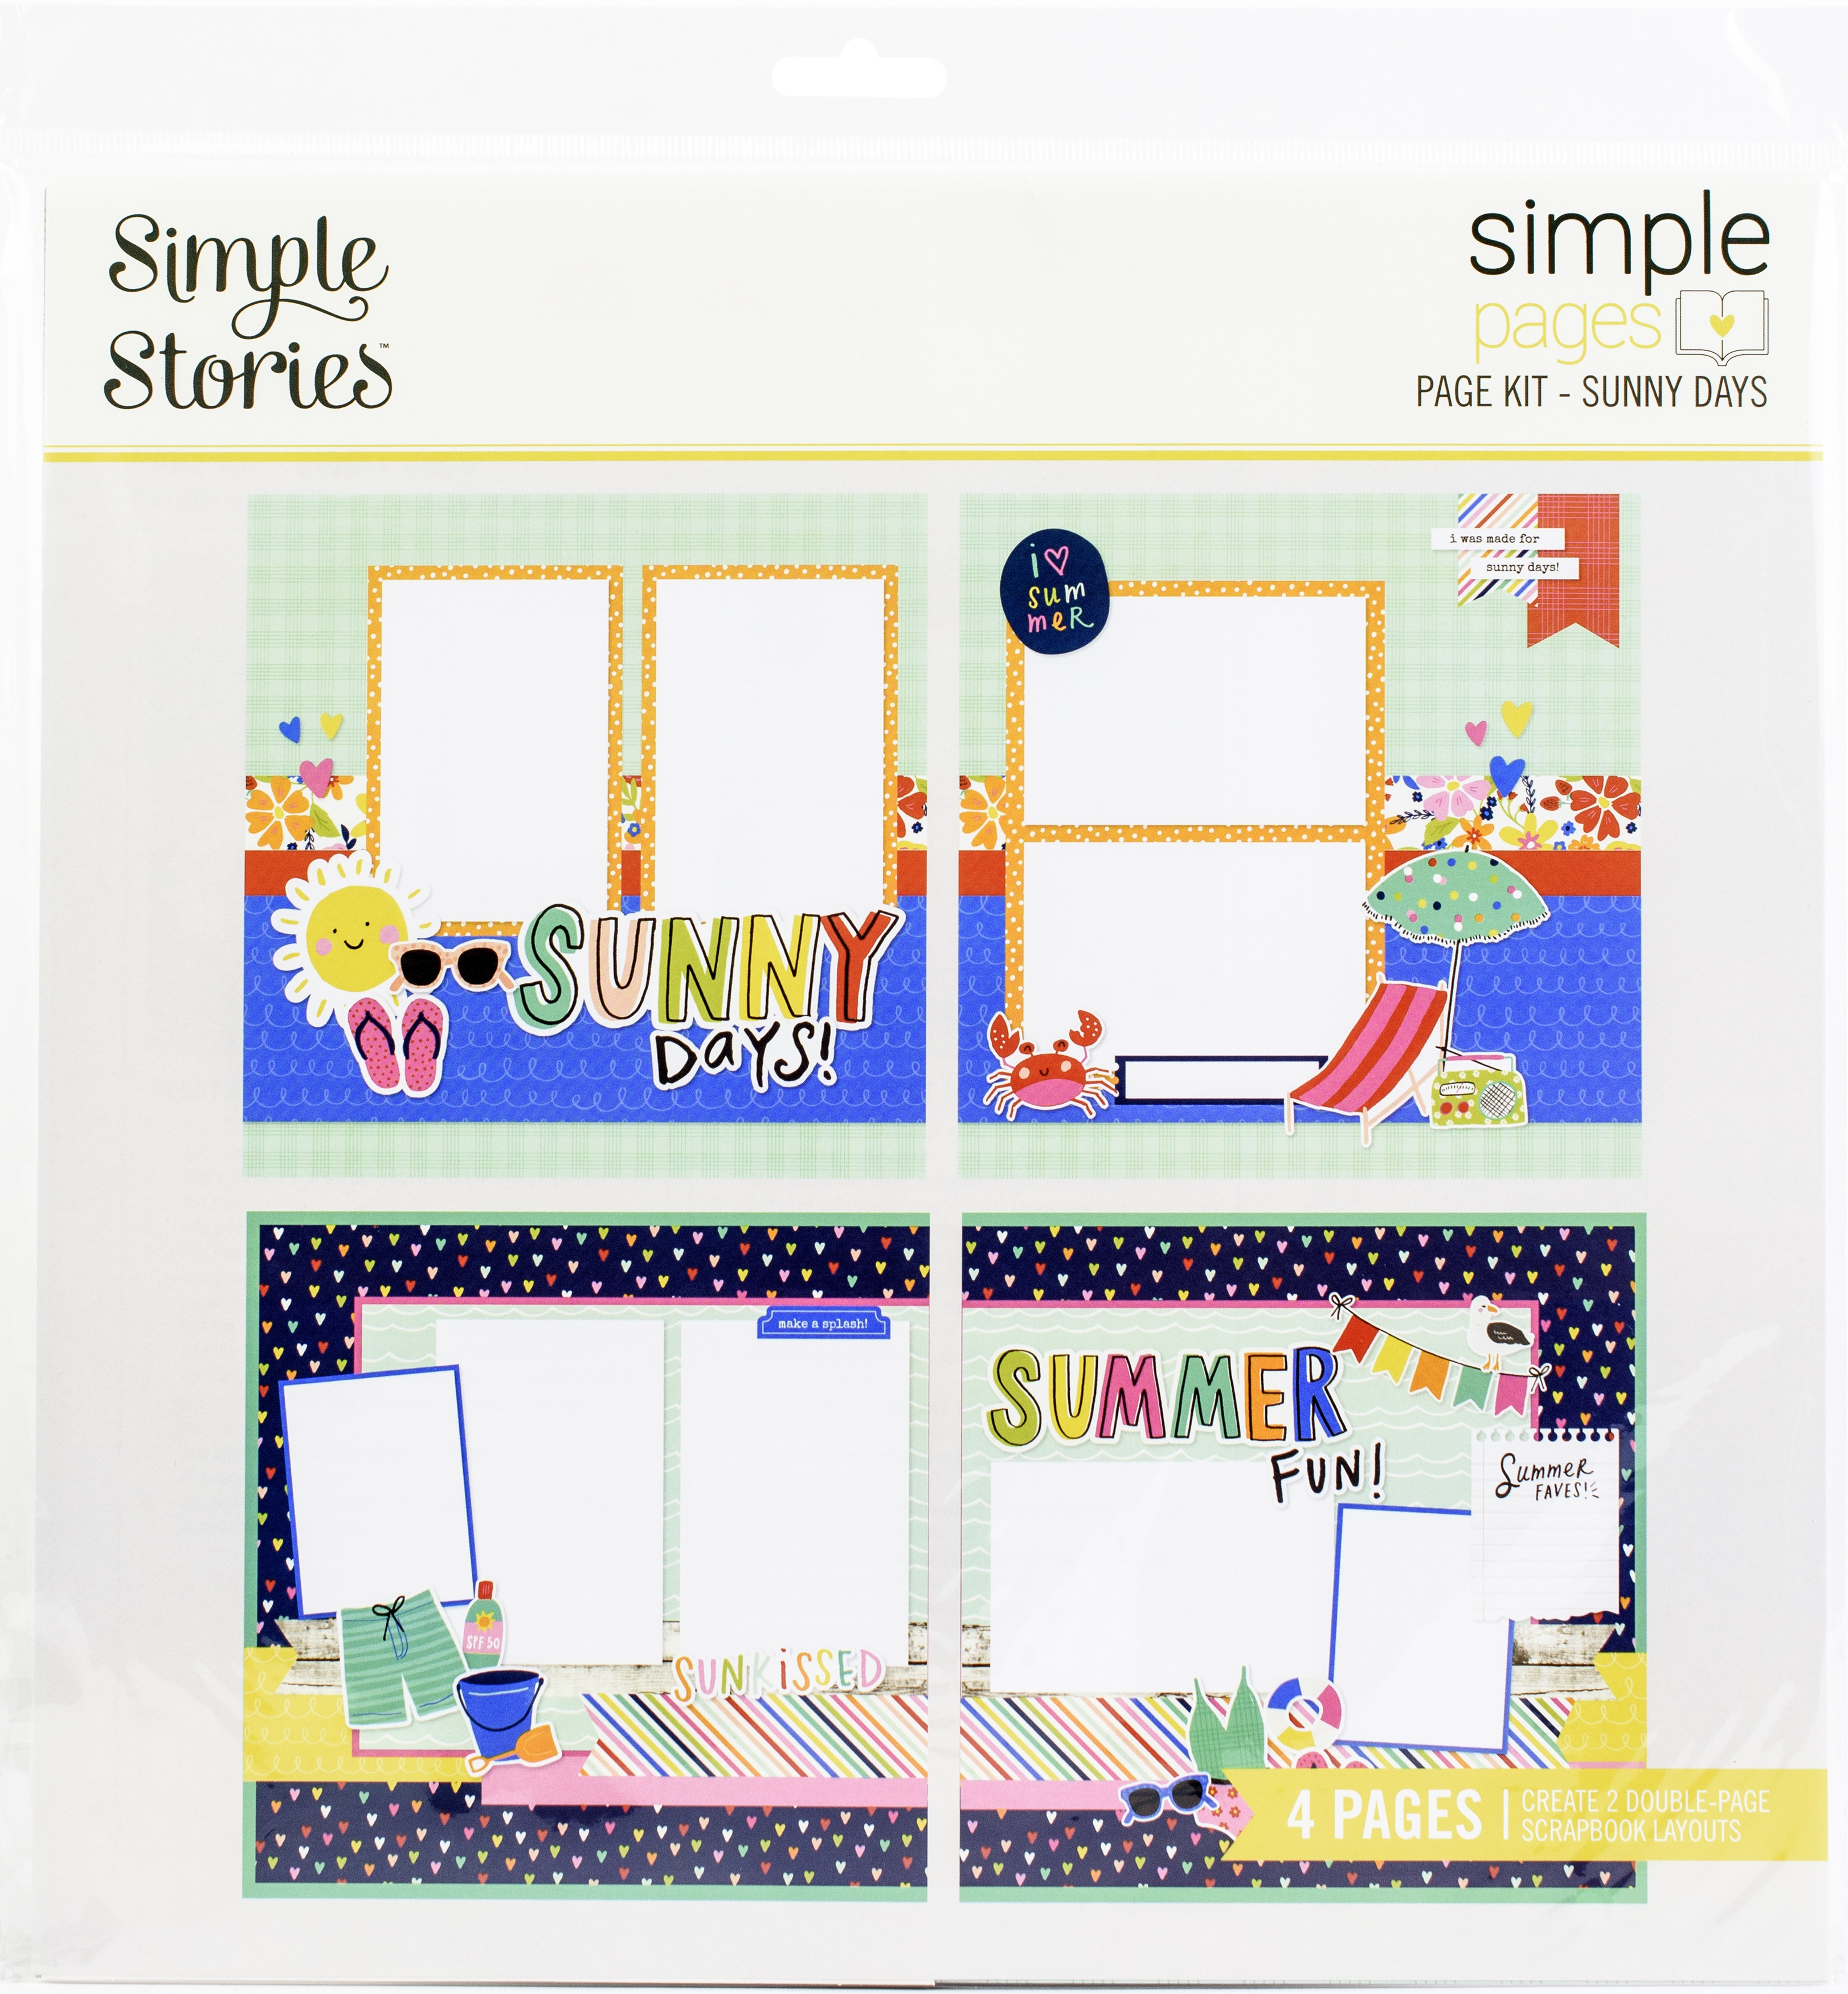 Simple Stories Simple Pages Page Kit-Sunny Days, Sunkissed